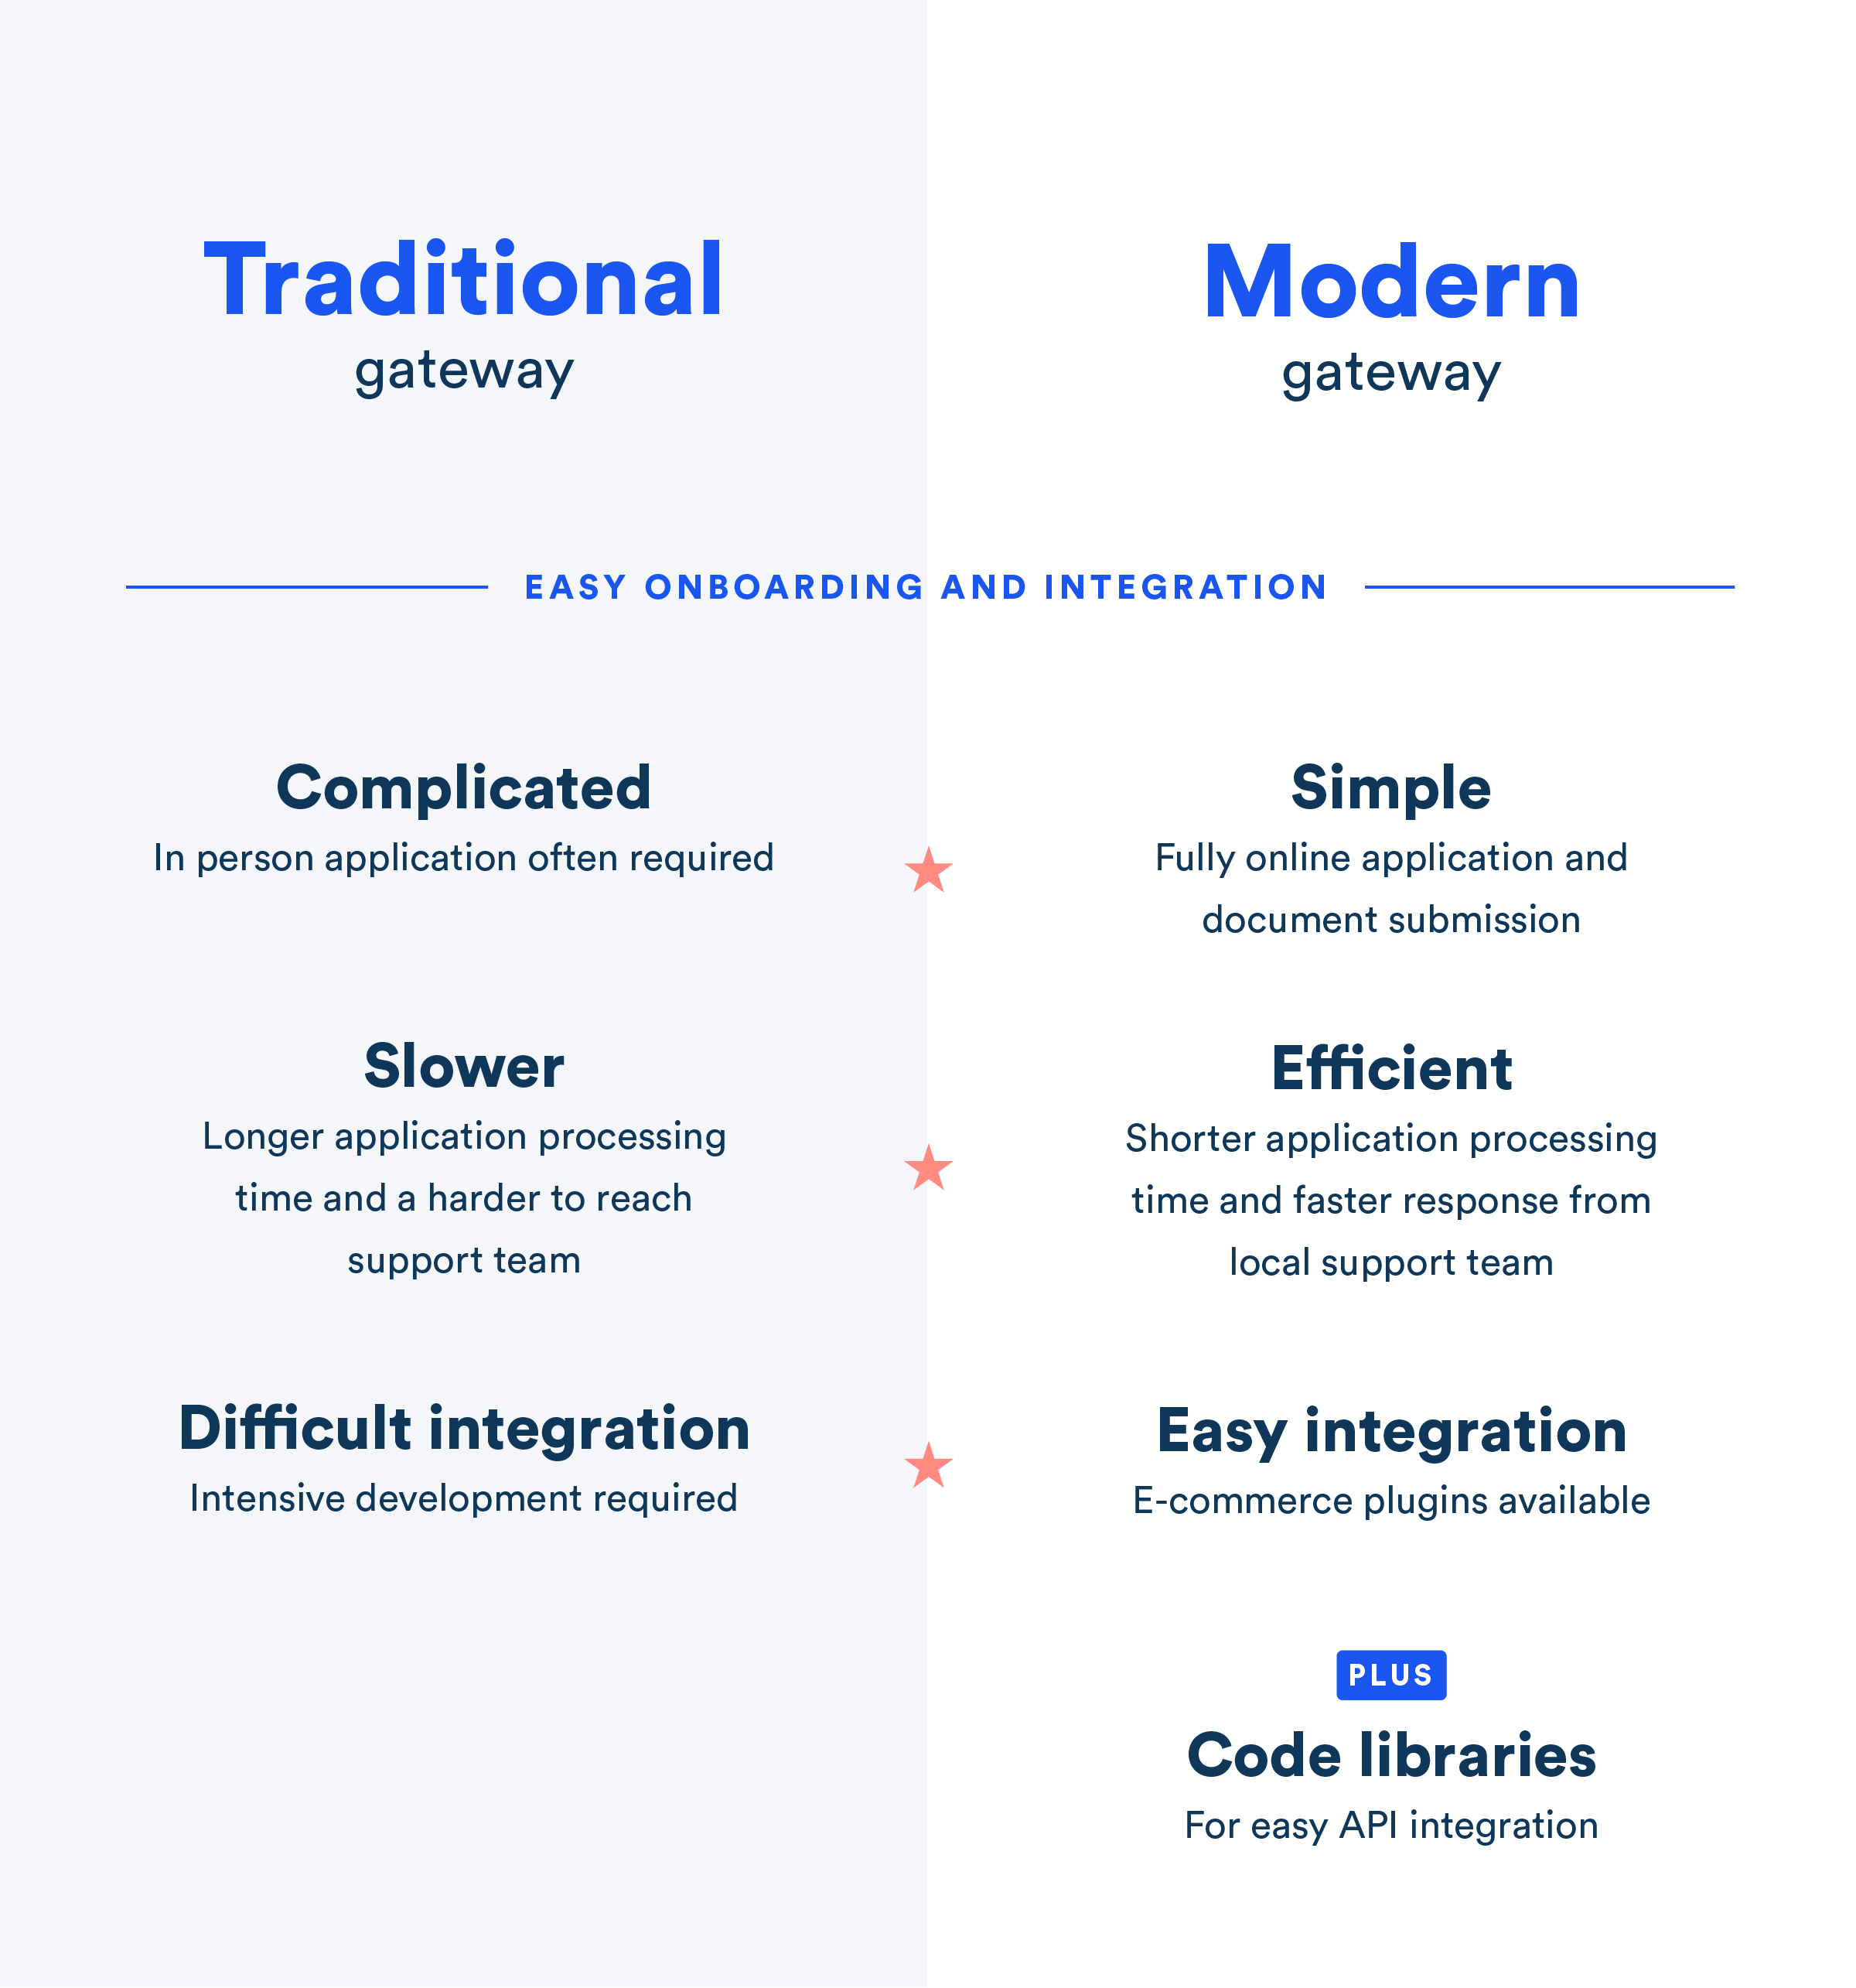 Easy onboarding and integration